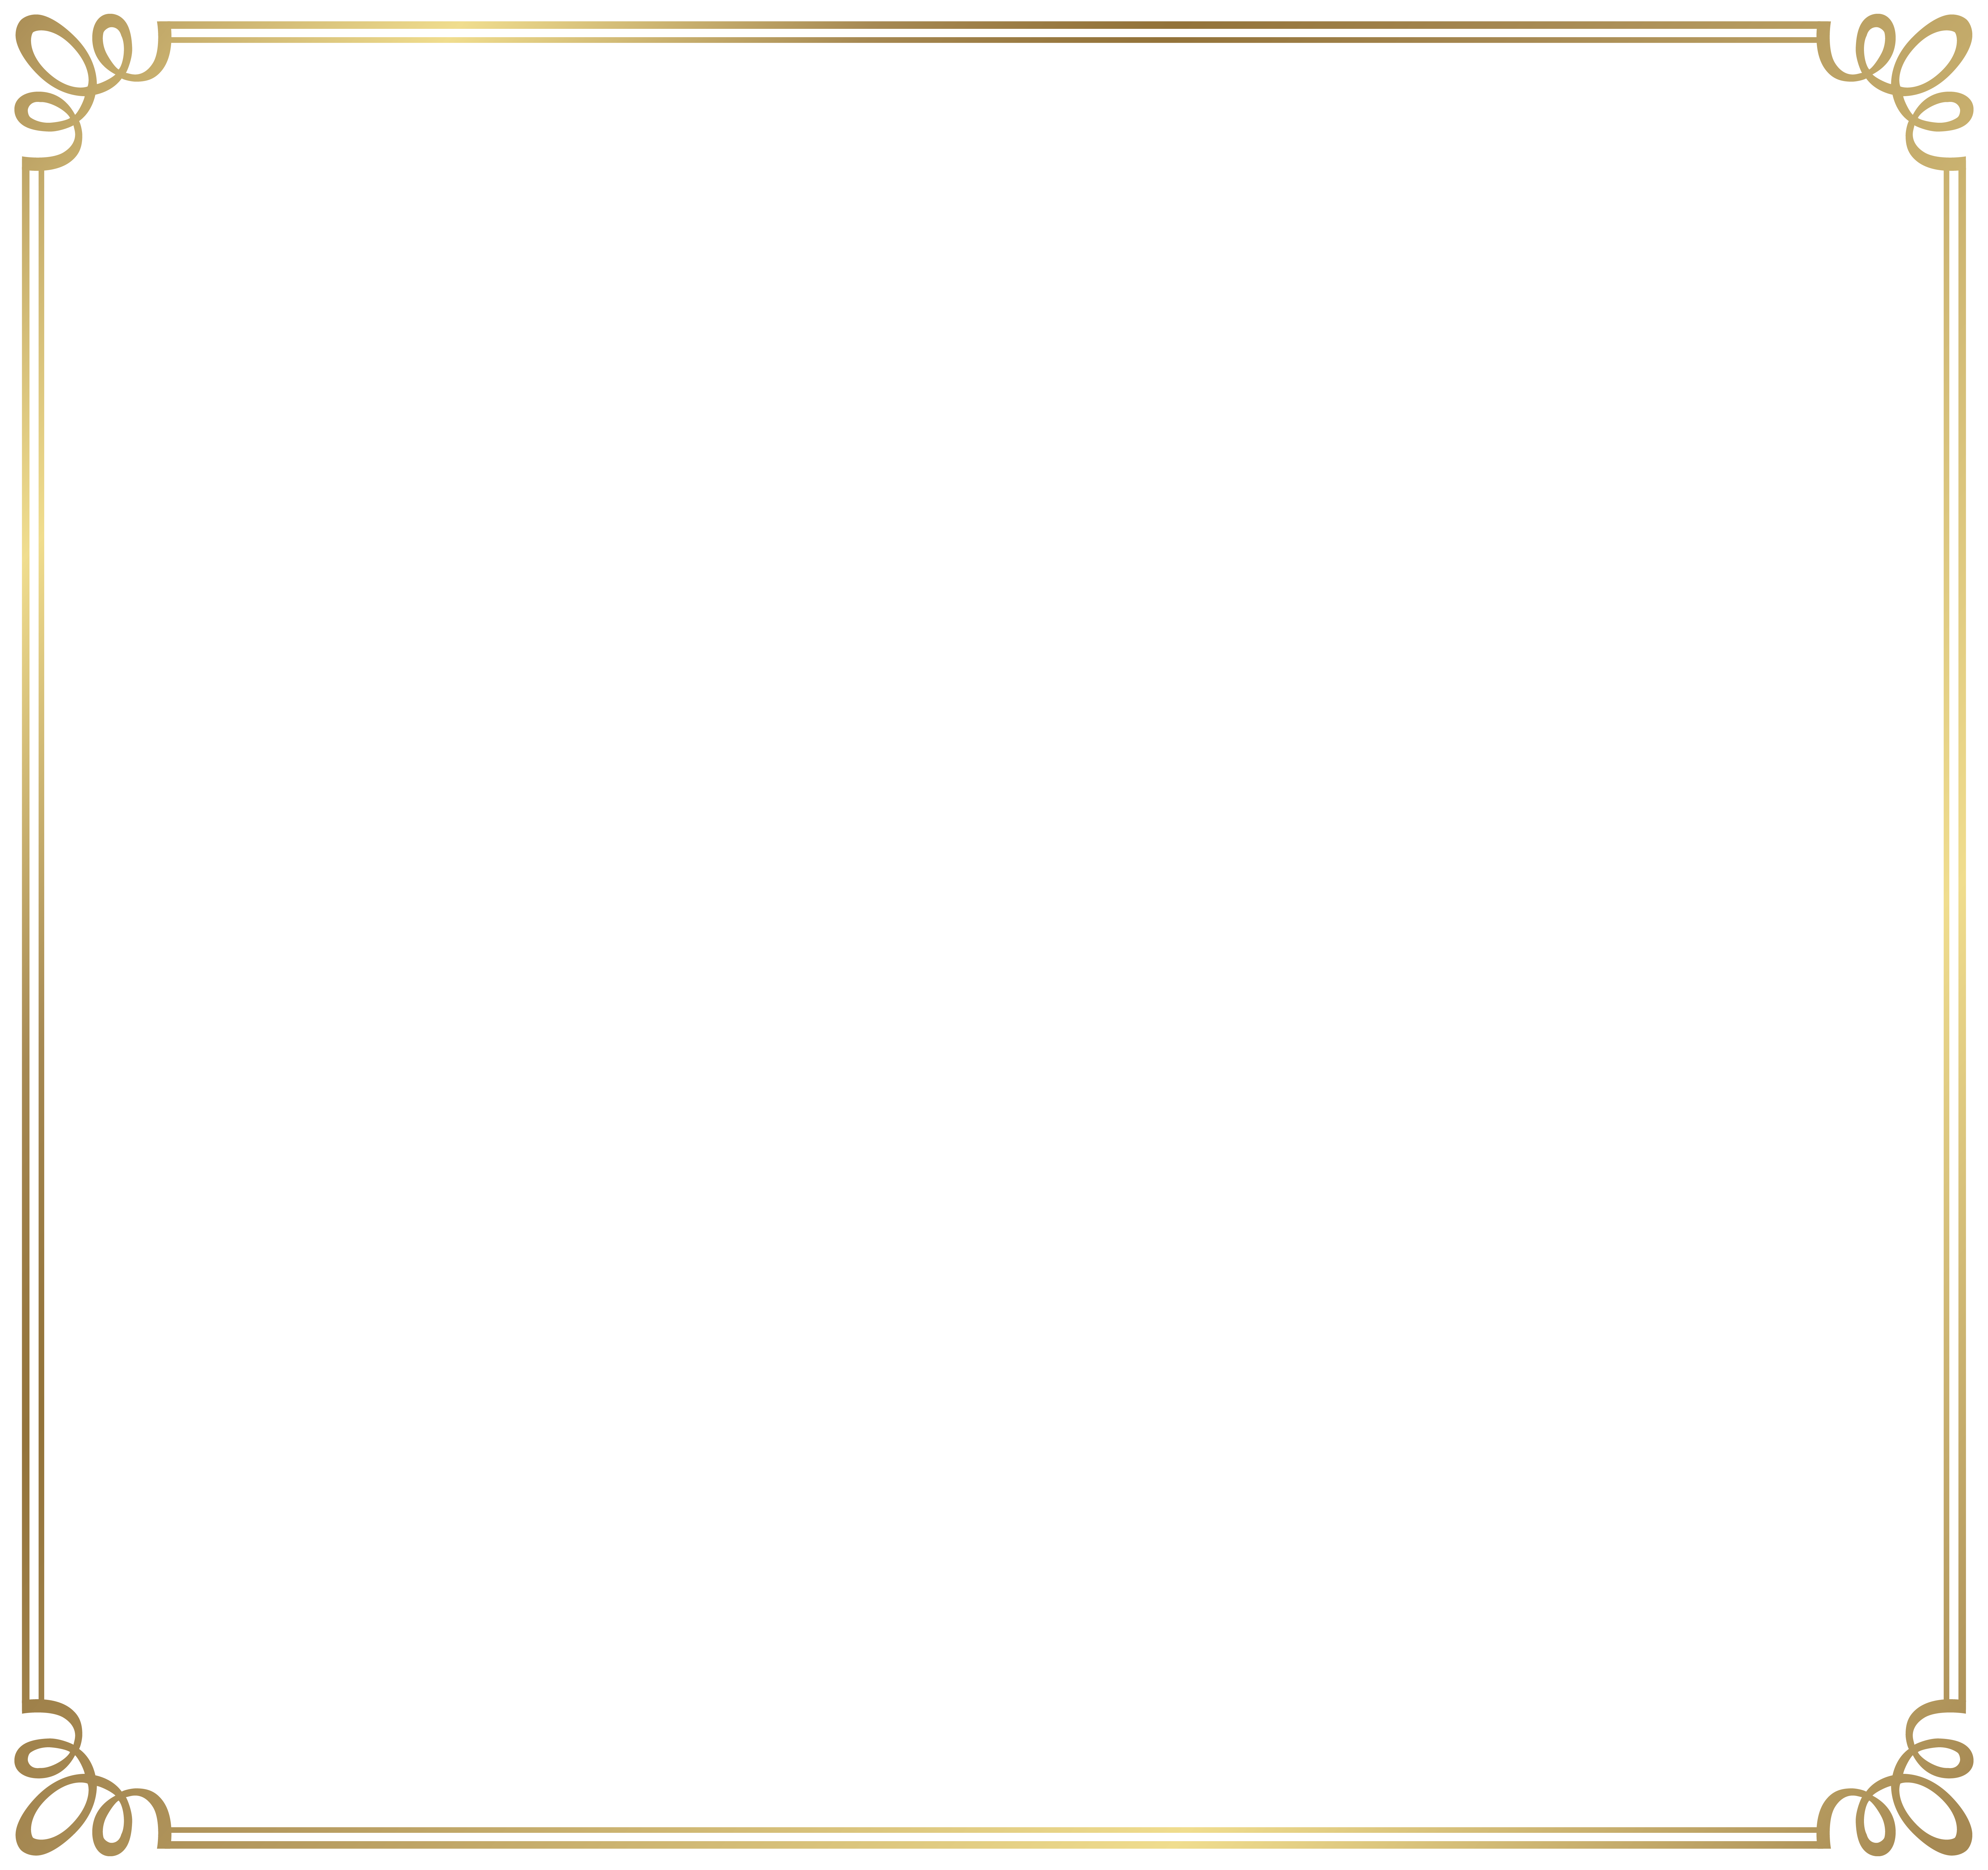 Decorative frame image gallery. Border clipart png clip free